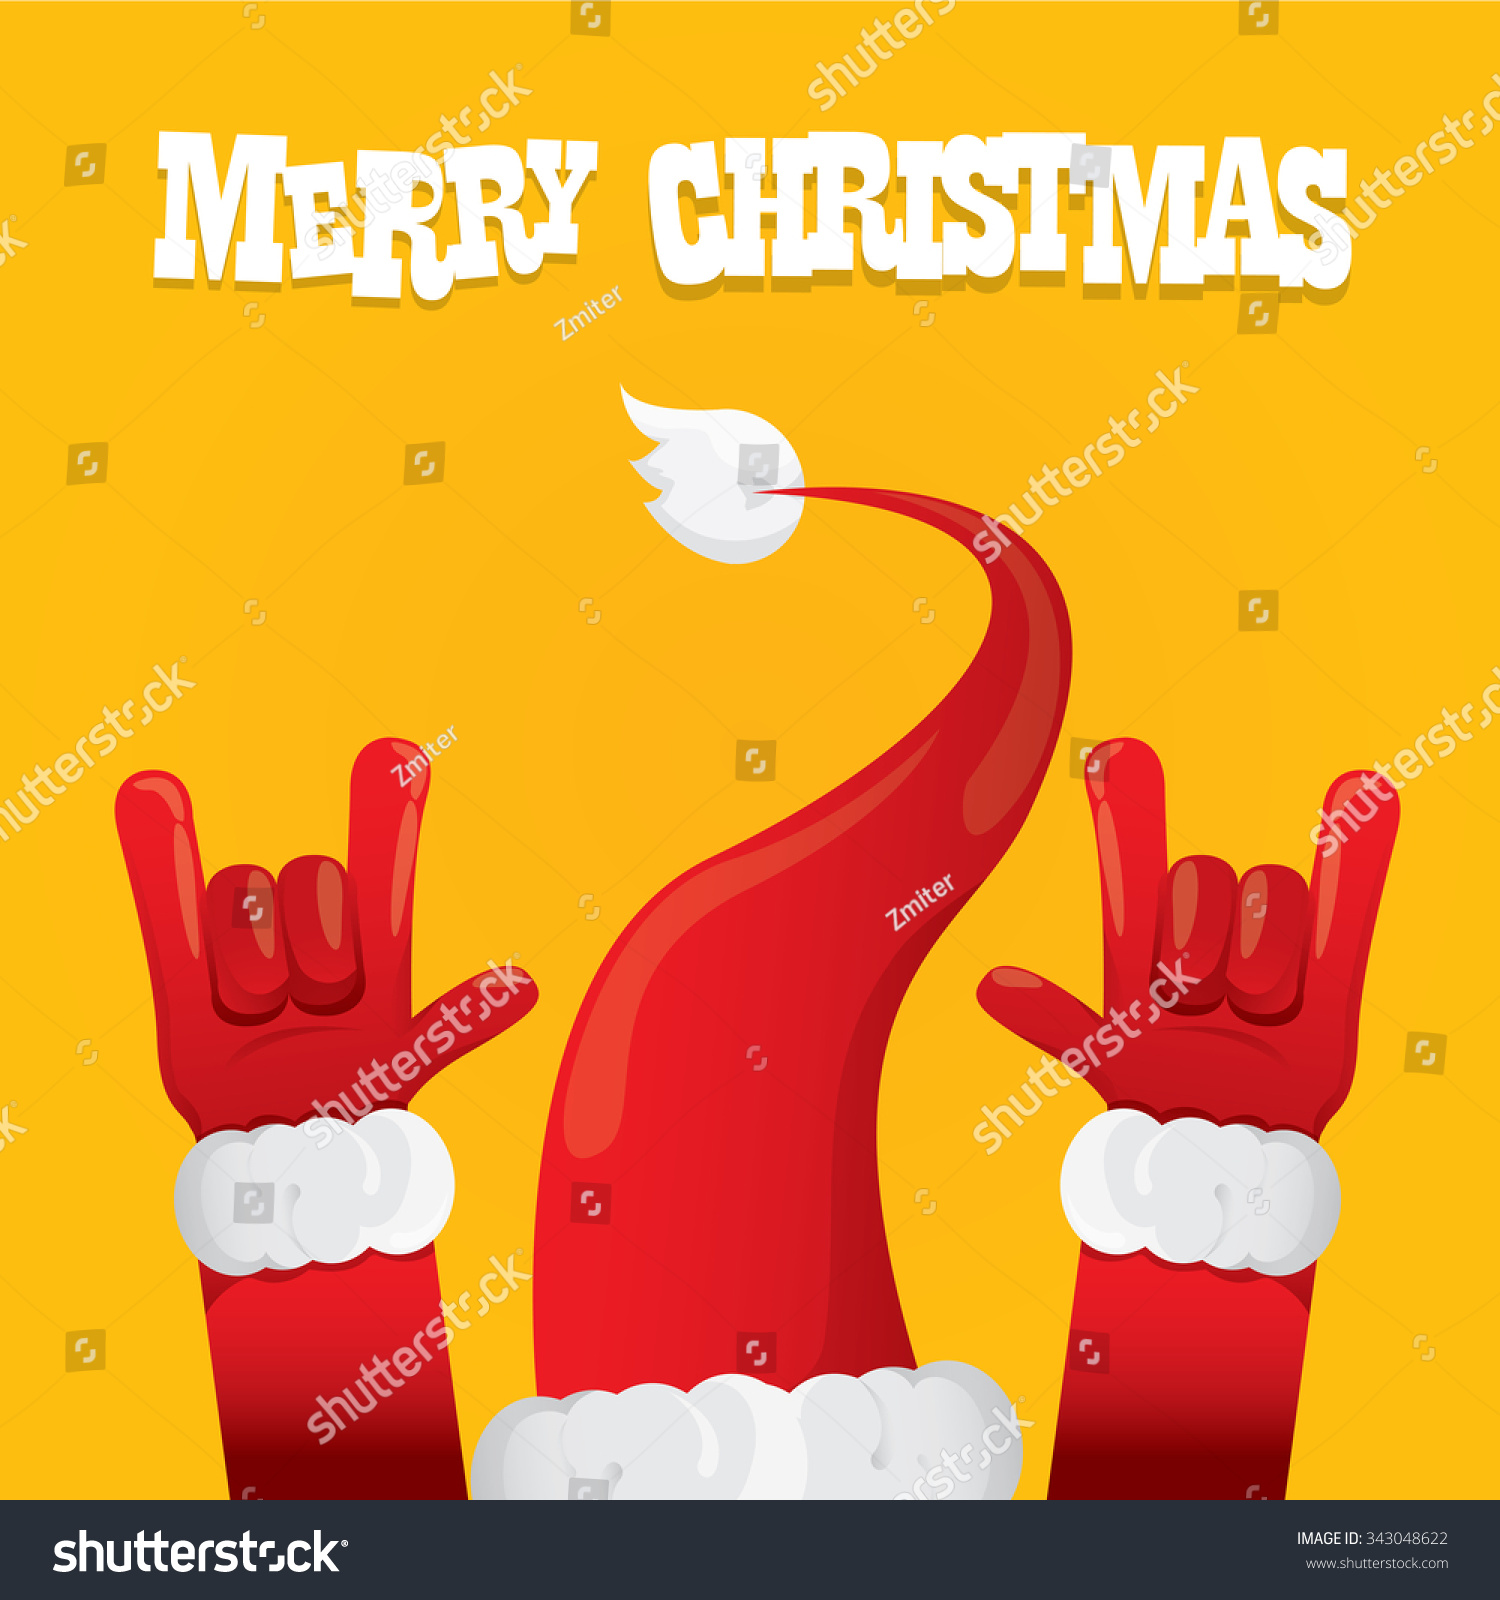 Rock n roll poster design - Santa Claus Hand Rock N Roll Icon Vector Illustration Christmas Rock Concert Poster Design Template